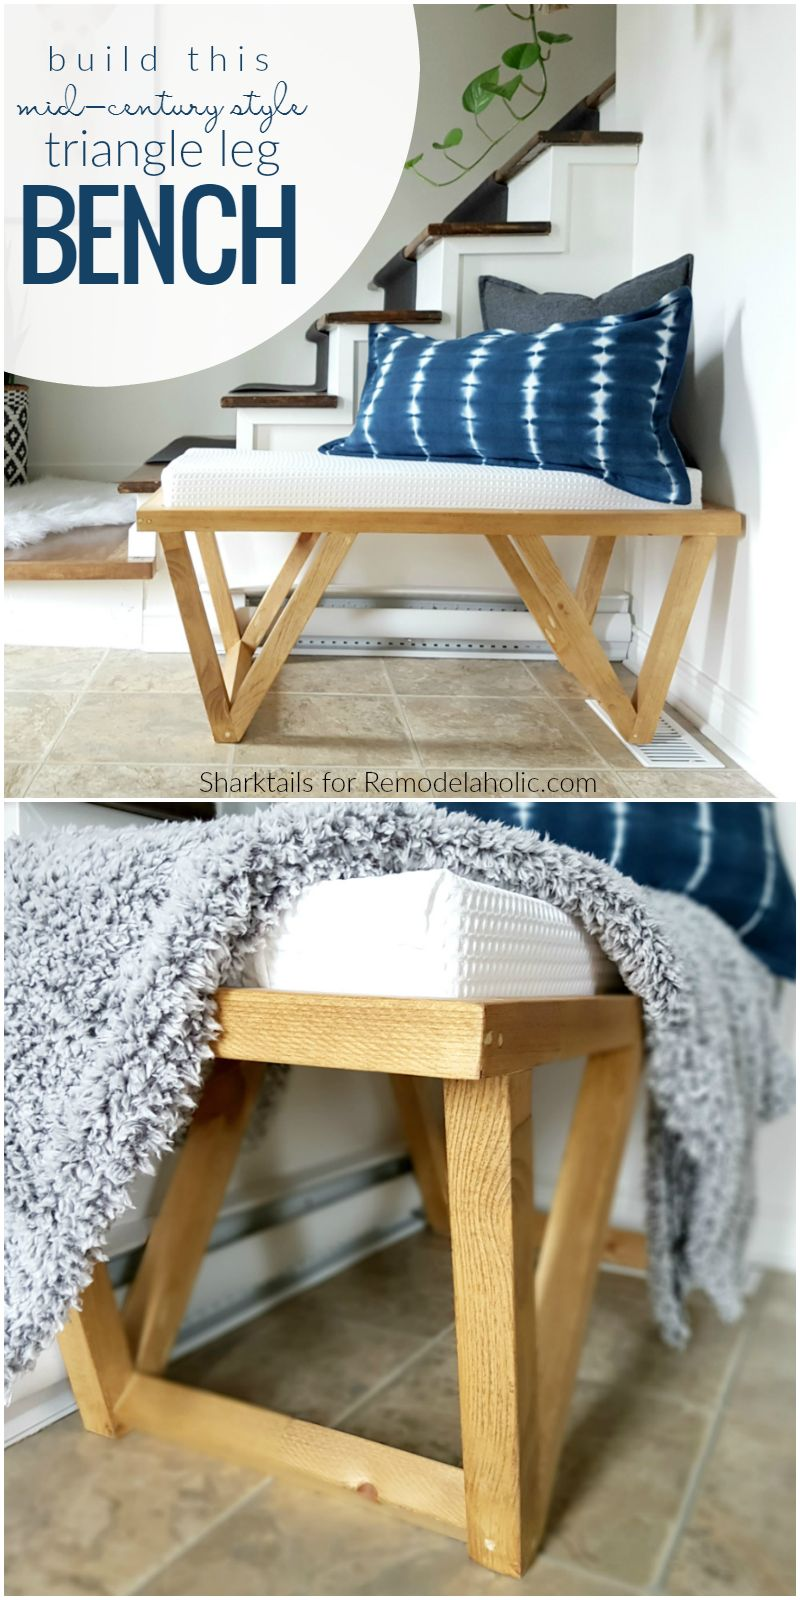 Build This Mid-Century Inspired Triangle Leg Bench